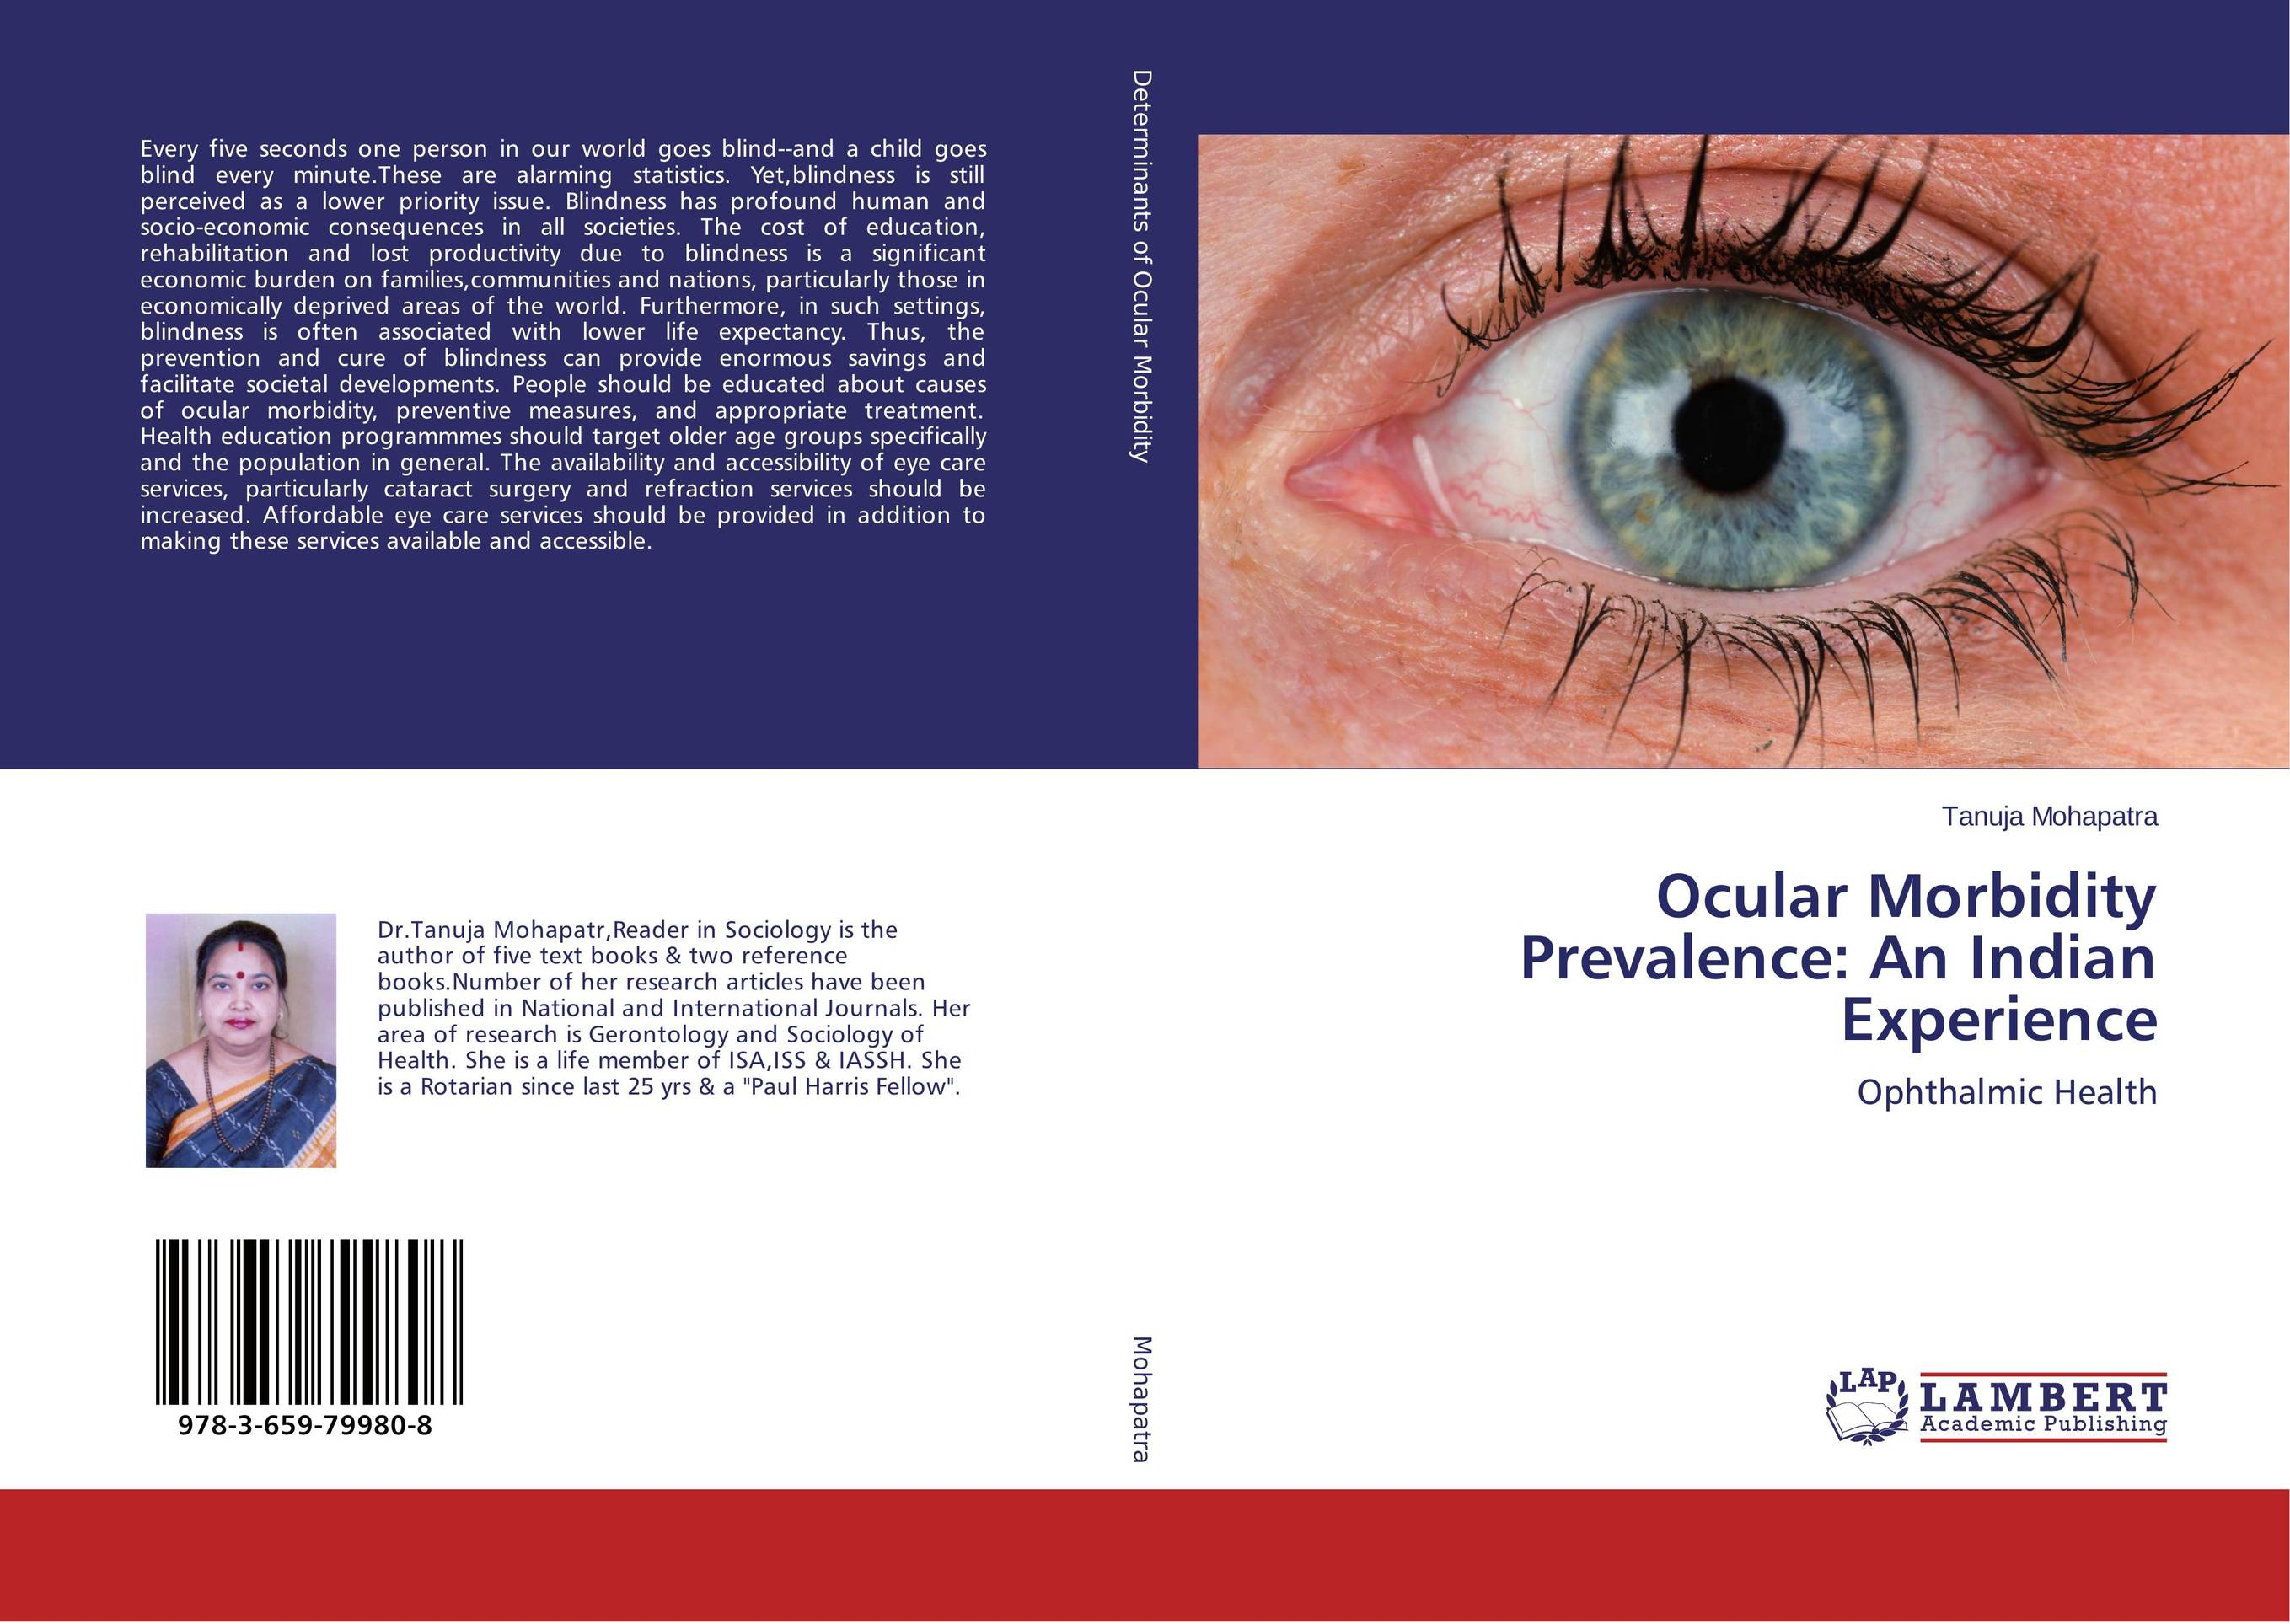 Ocular Morbidity Prevalence: An Indian Experience